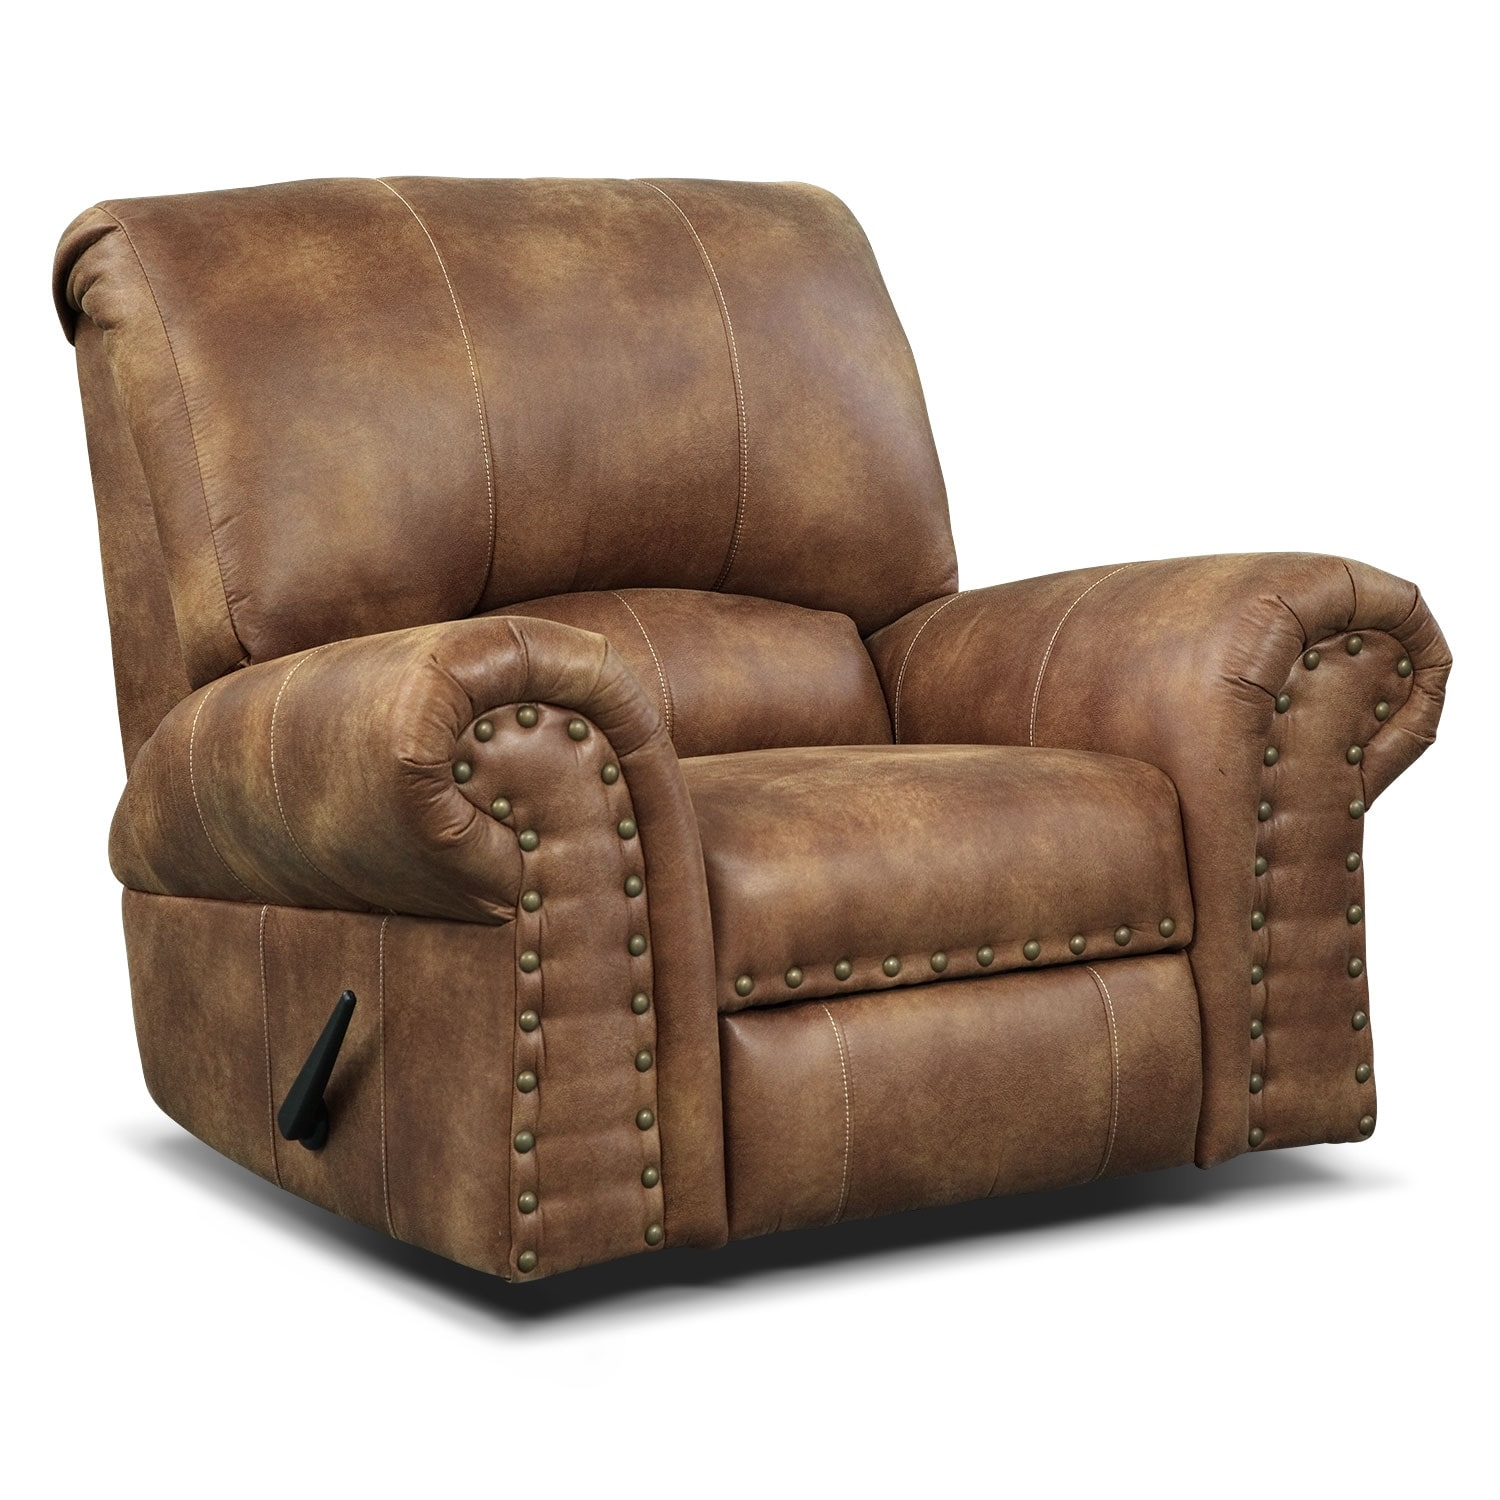 Burlington Recliner - Cognac